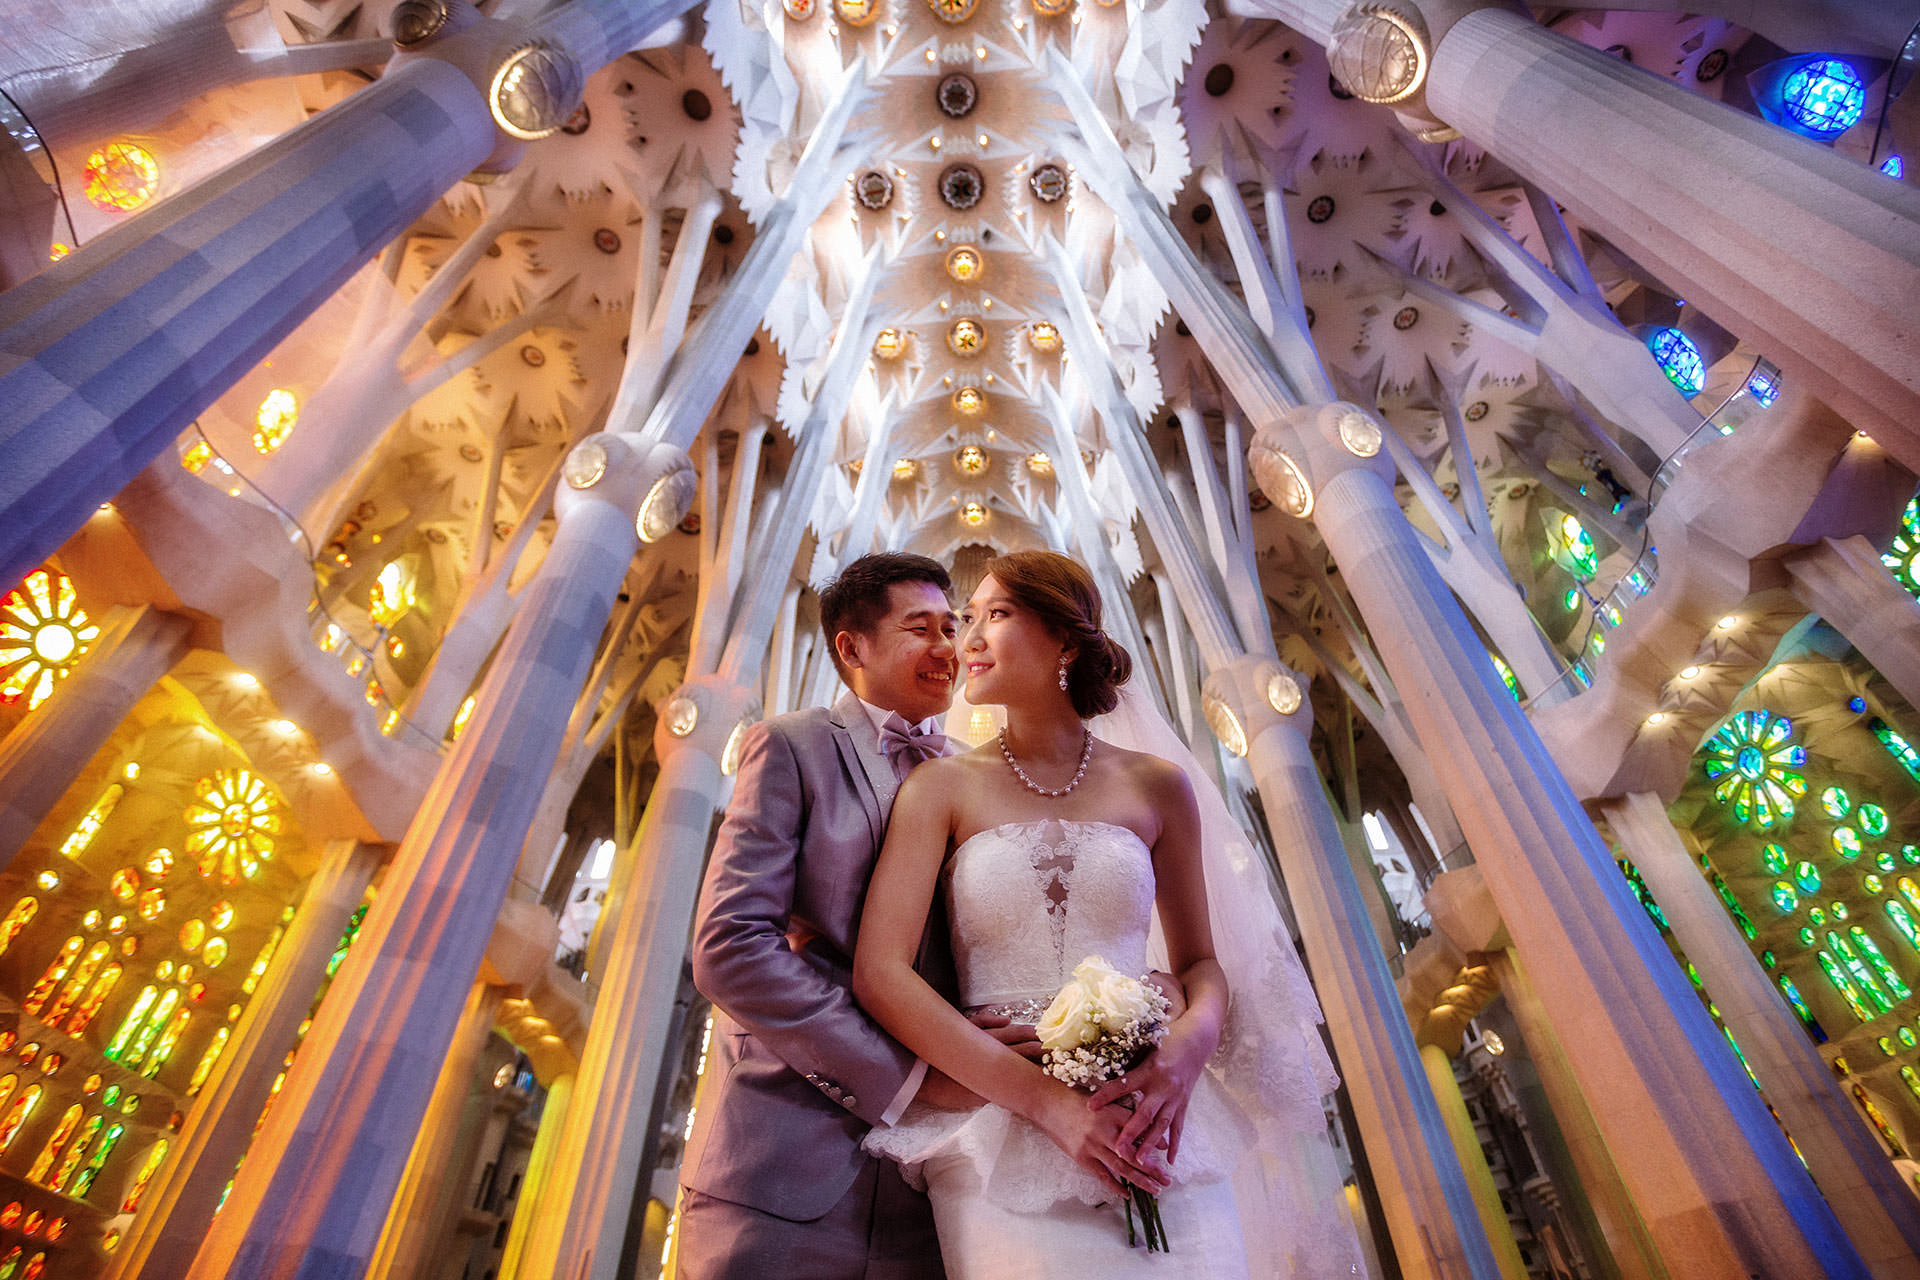 sagrada familia prewedding photos barcelona